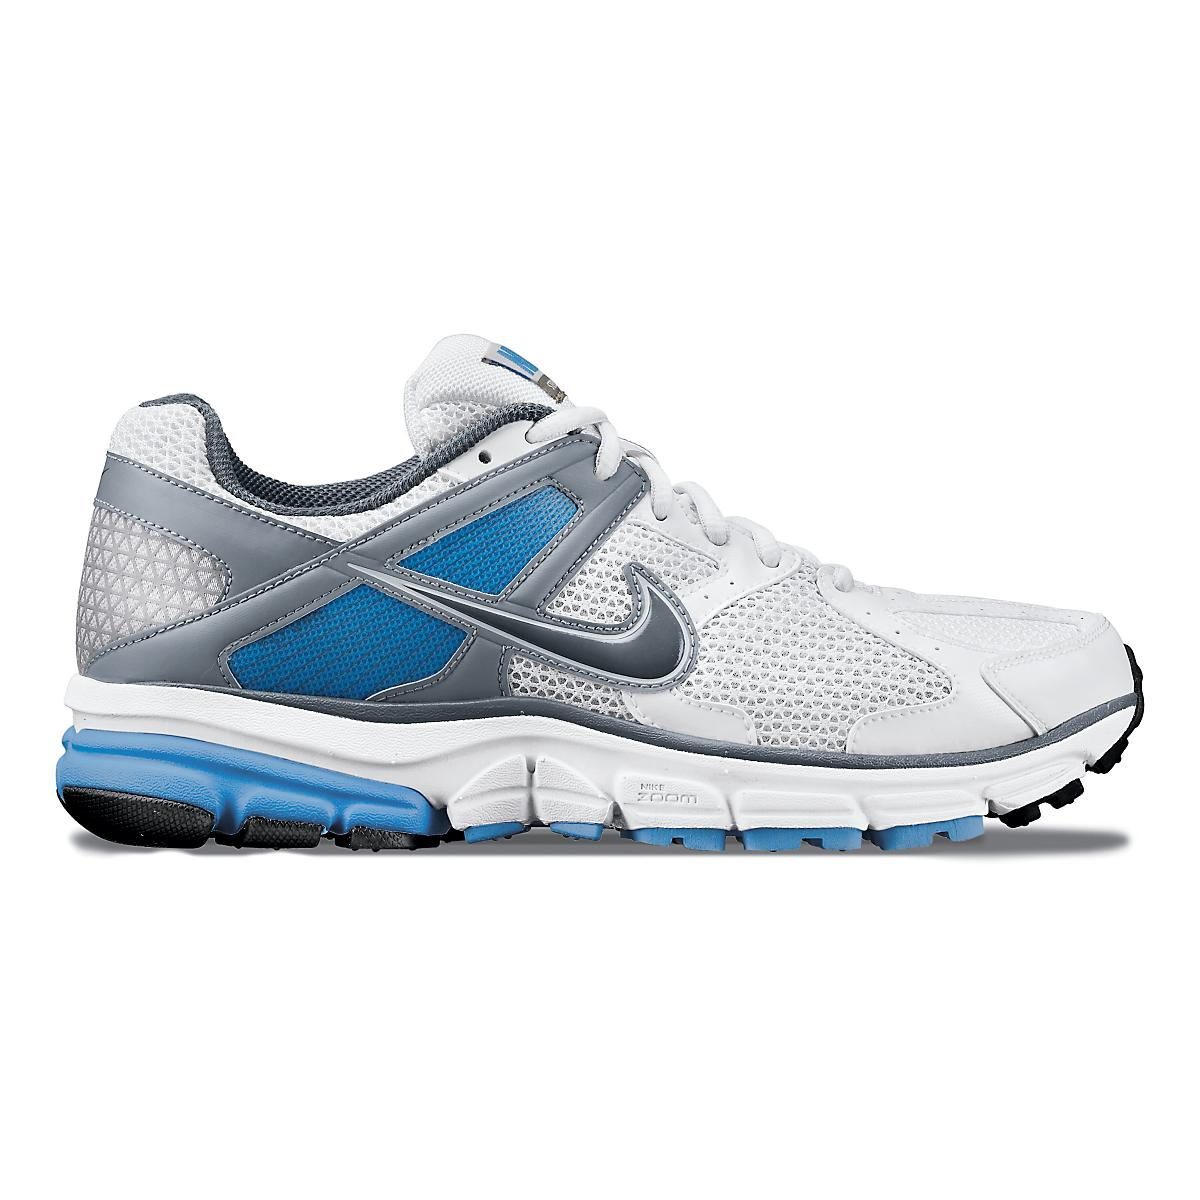 a099adcf6b09 ... where can i buy womens nike zoom structure triax 14 running shoe at  road runner sports